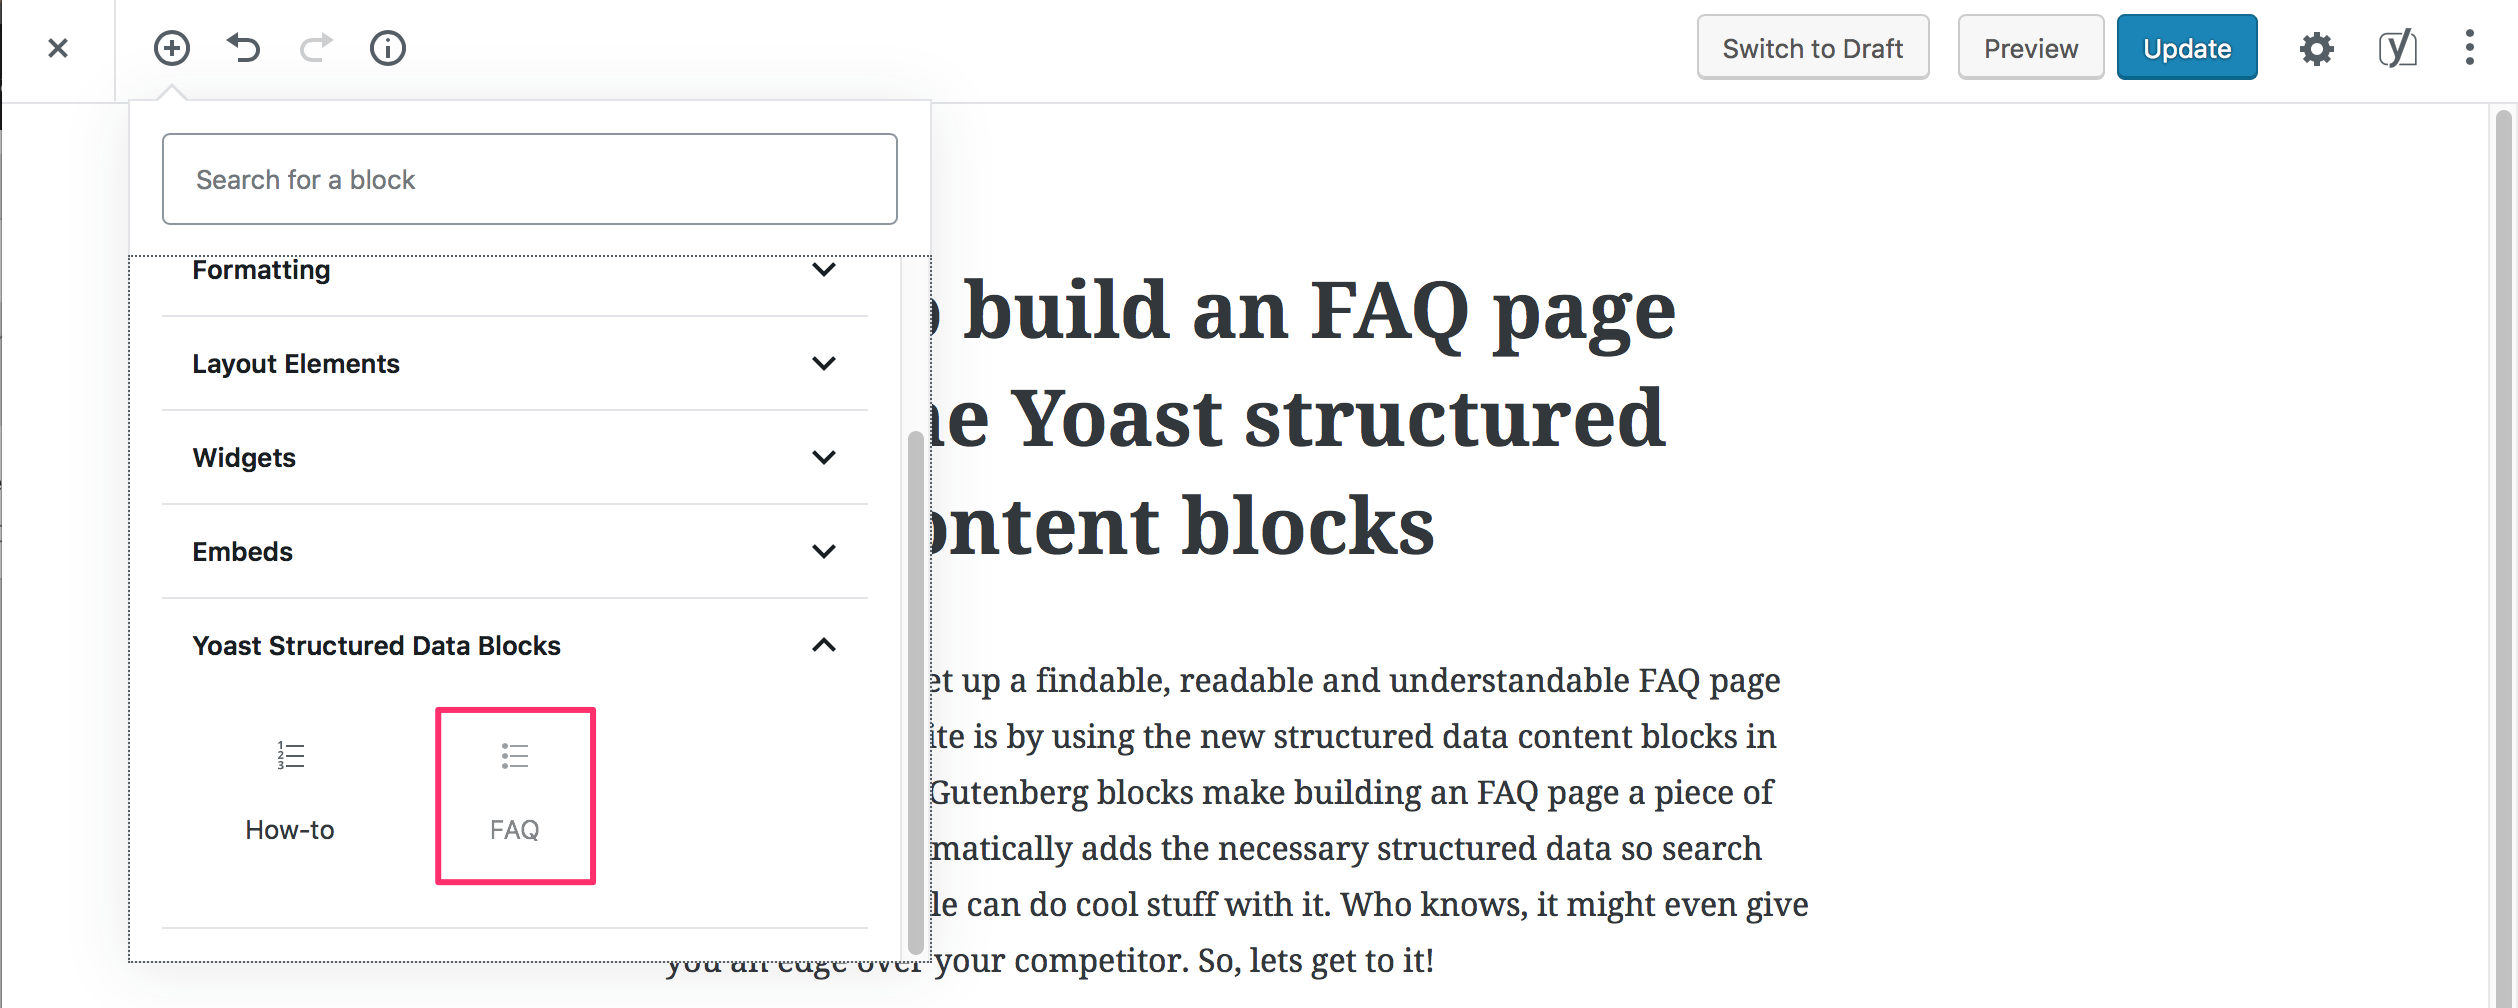 How to build an FAQ page with Gutenberg and Yoast SEO • Yoast